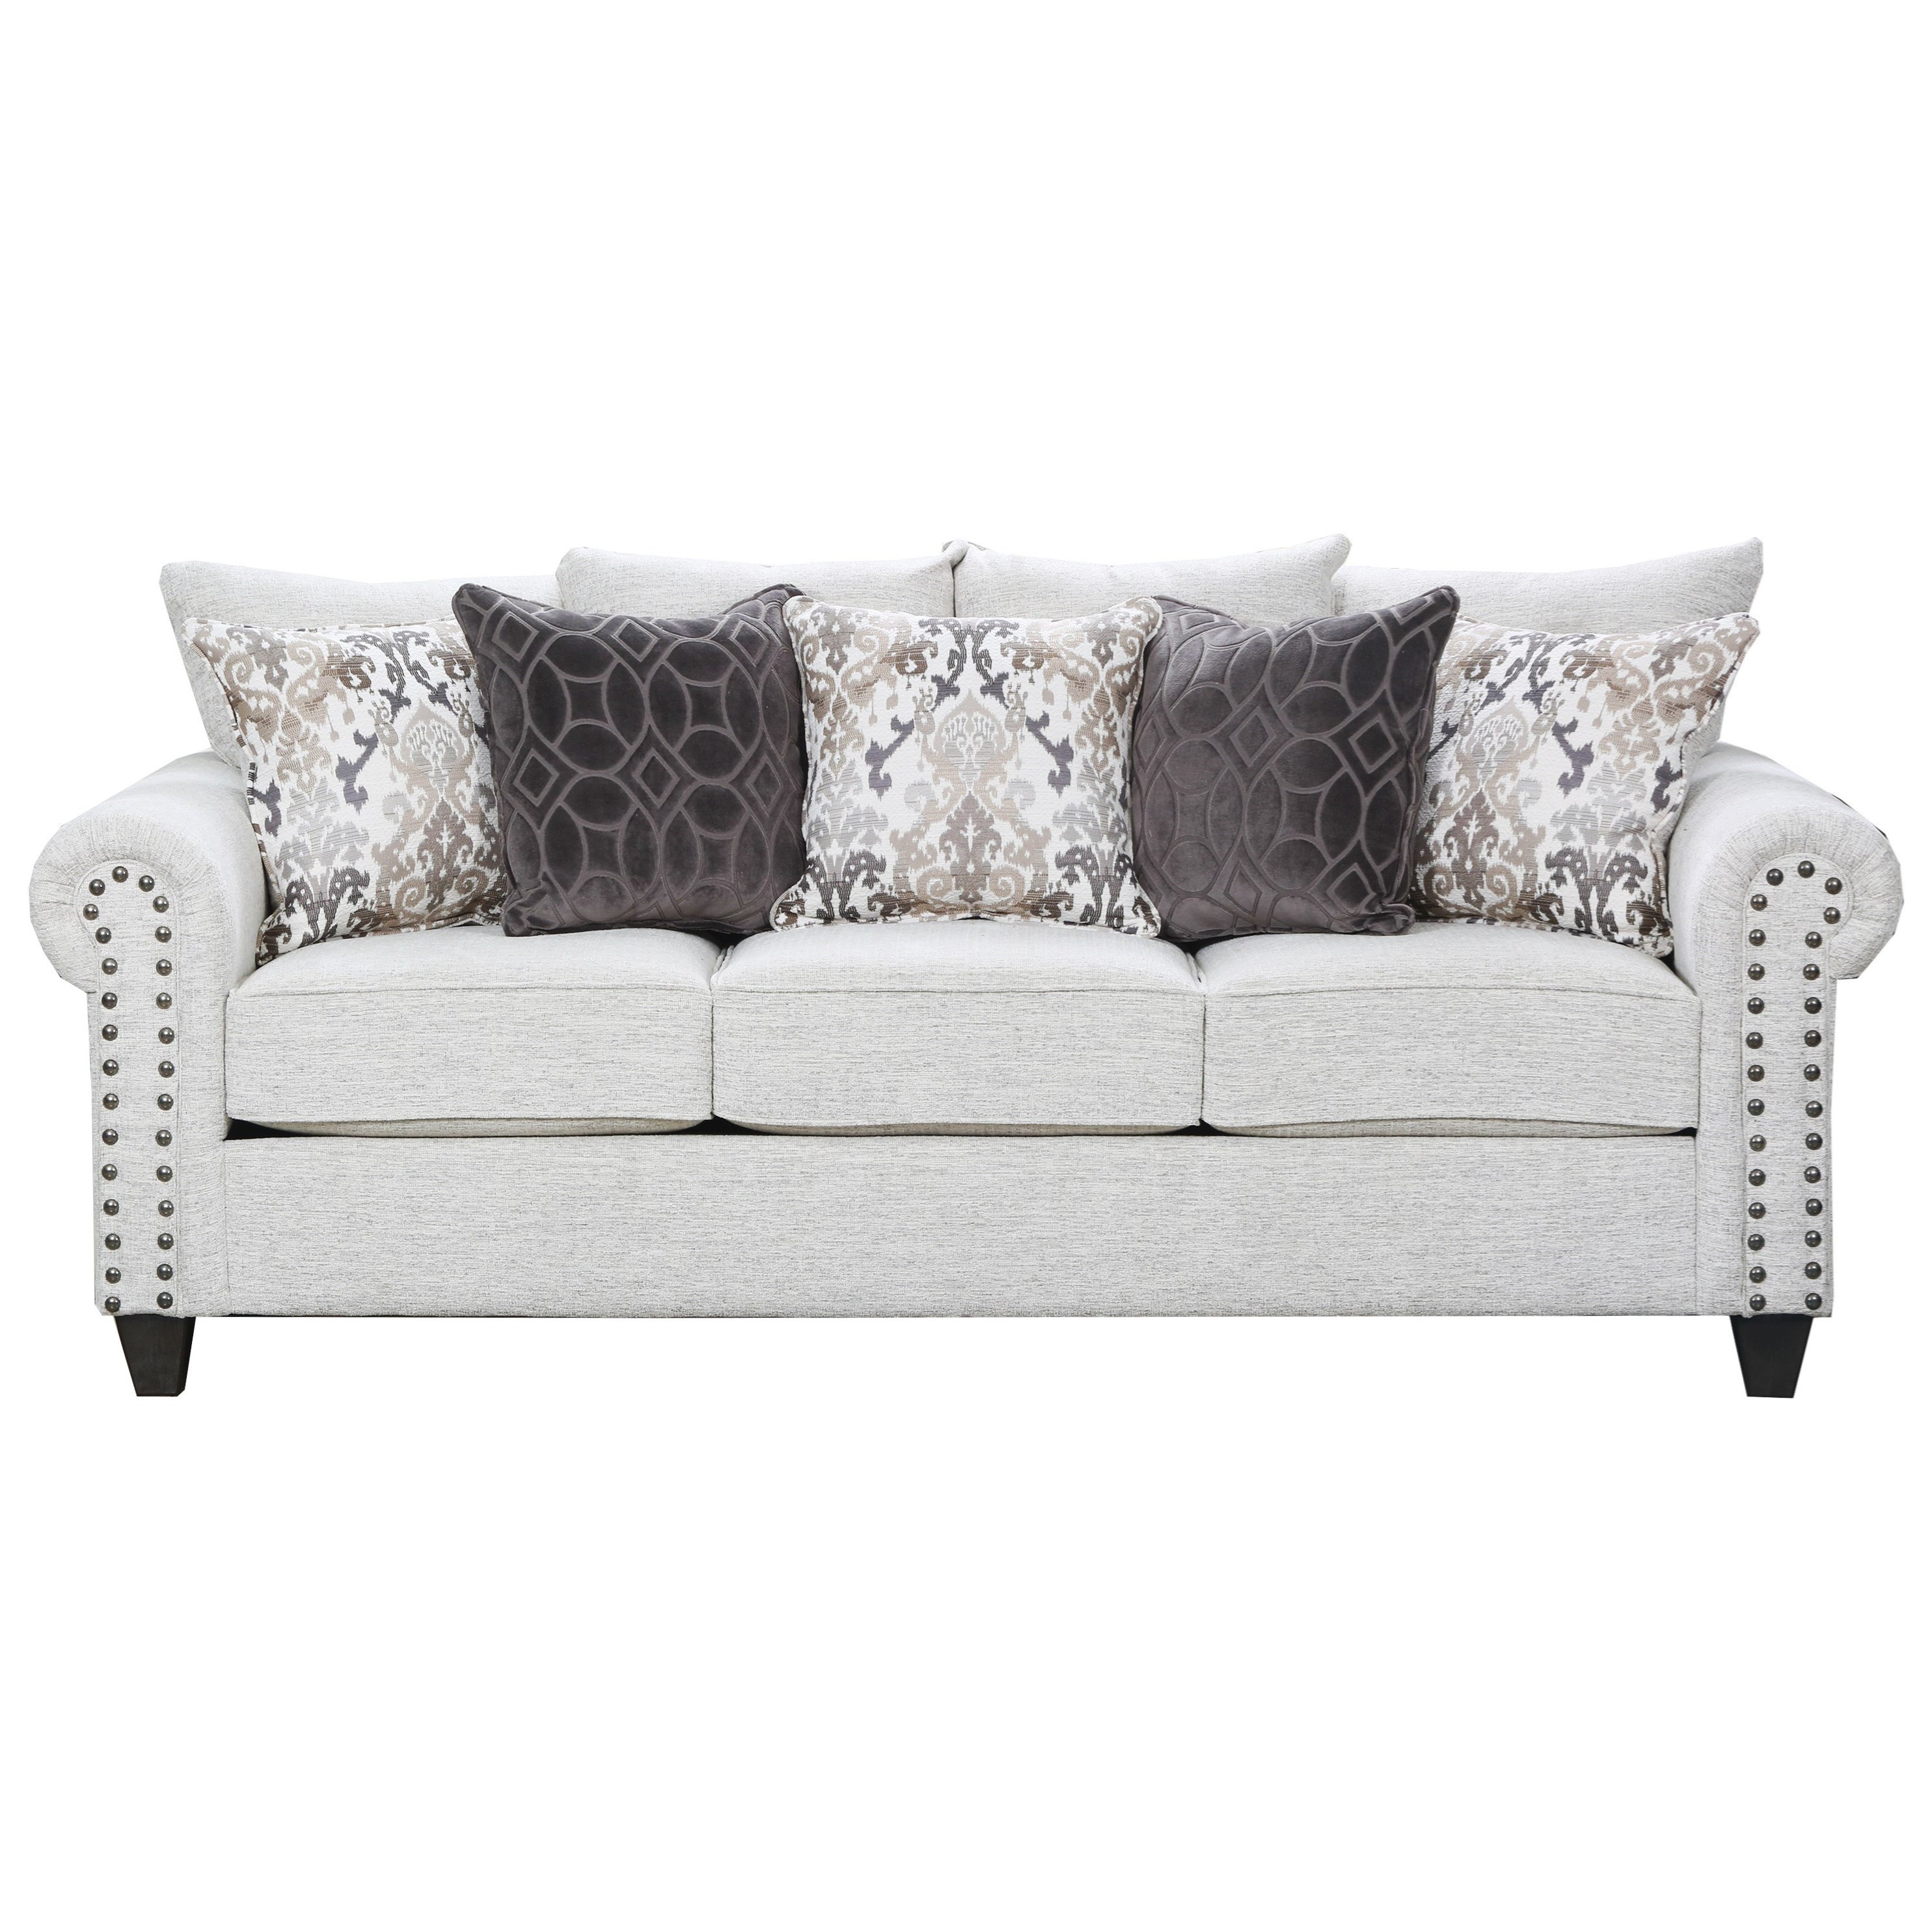 9175BR Sofa by United Furniture Industries at Dream Home Interiors